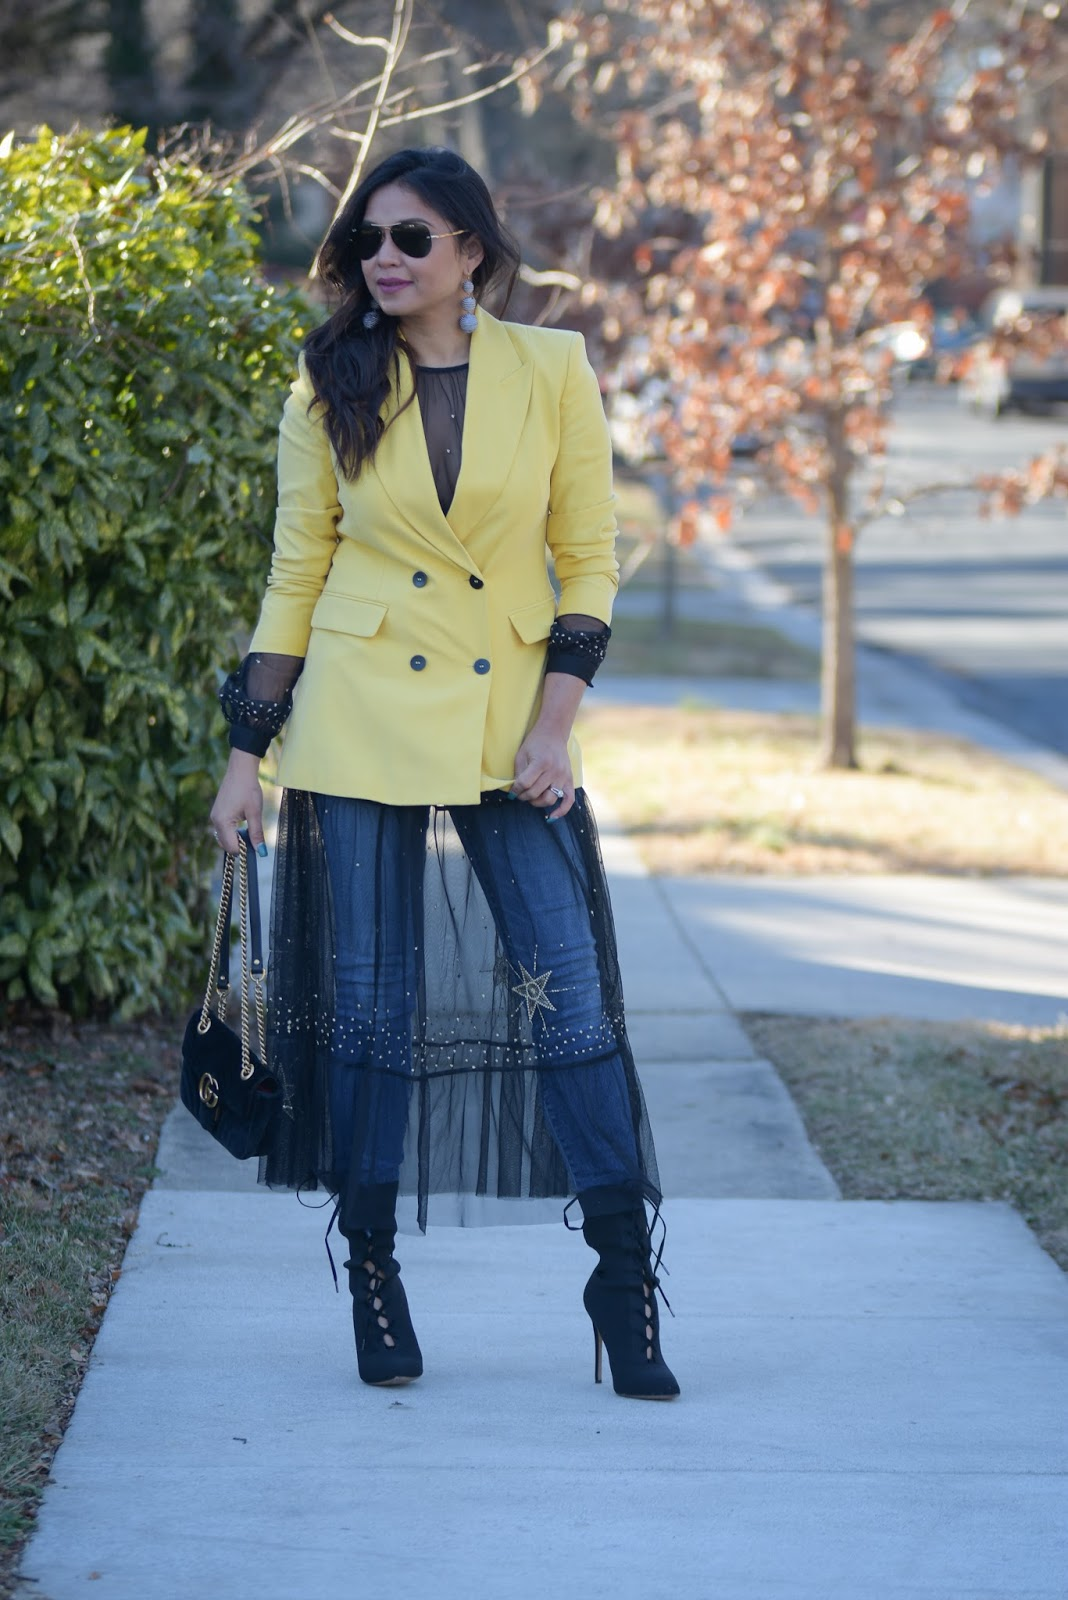 how to wear dress over jeans, mesh dress, yellow double breasted blazer, black booties, street chic, street style, black HM dress, zara blazer, ootd, myriad musings